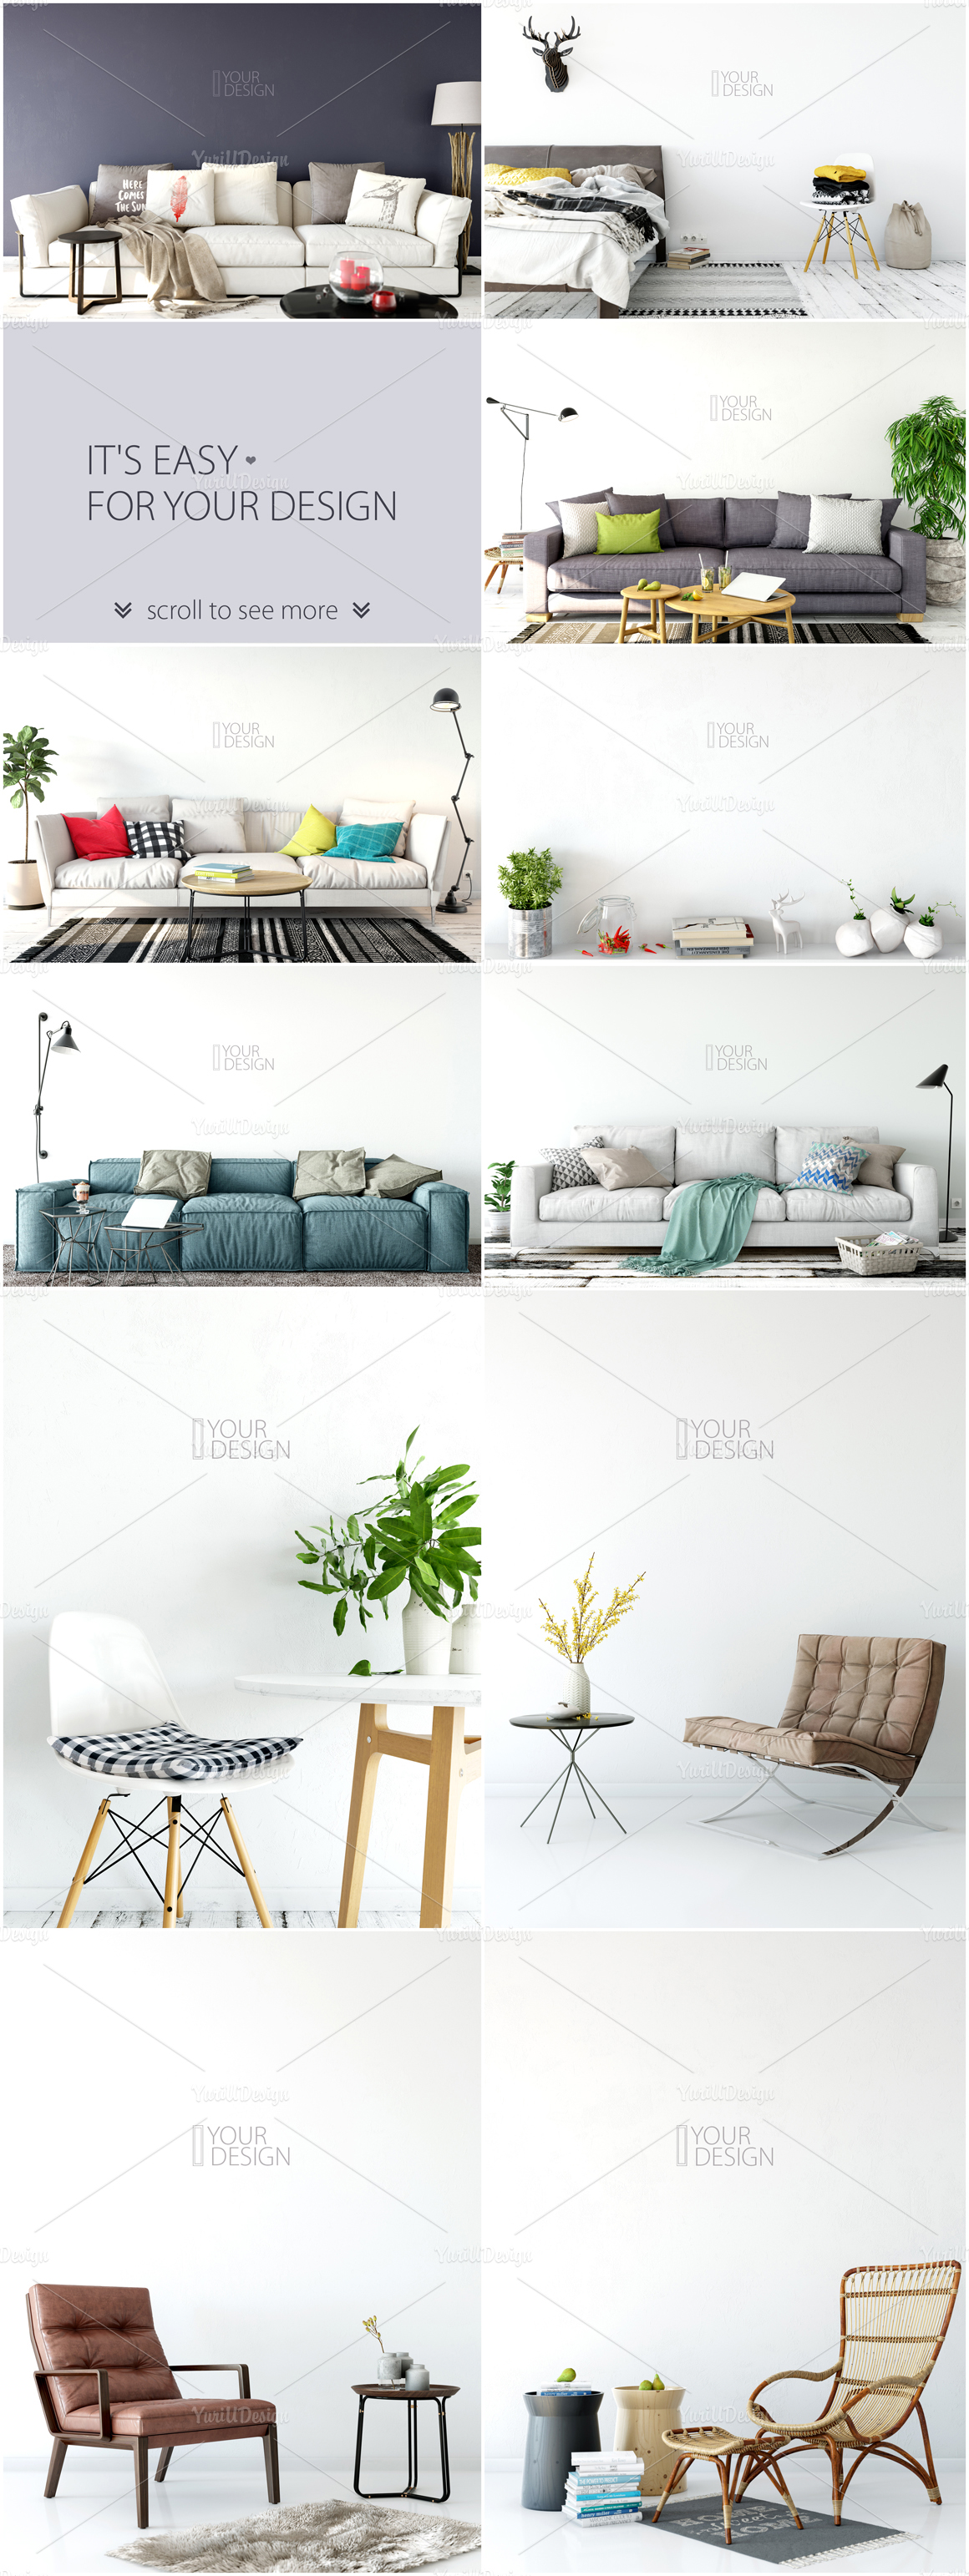 Wall Mockup - Bundle Vol. 1 example image 26